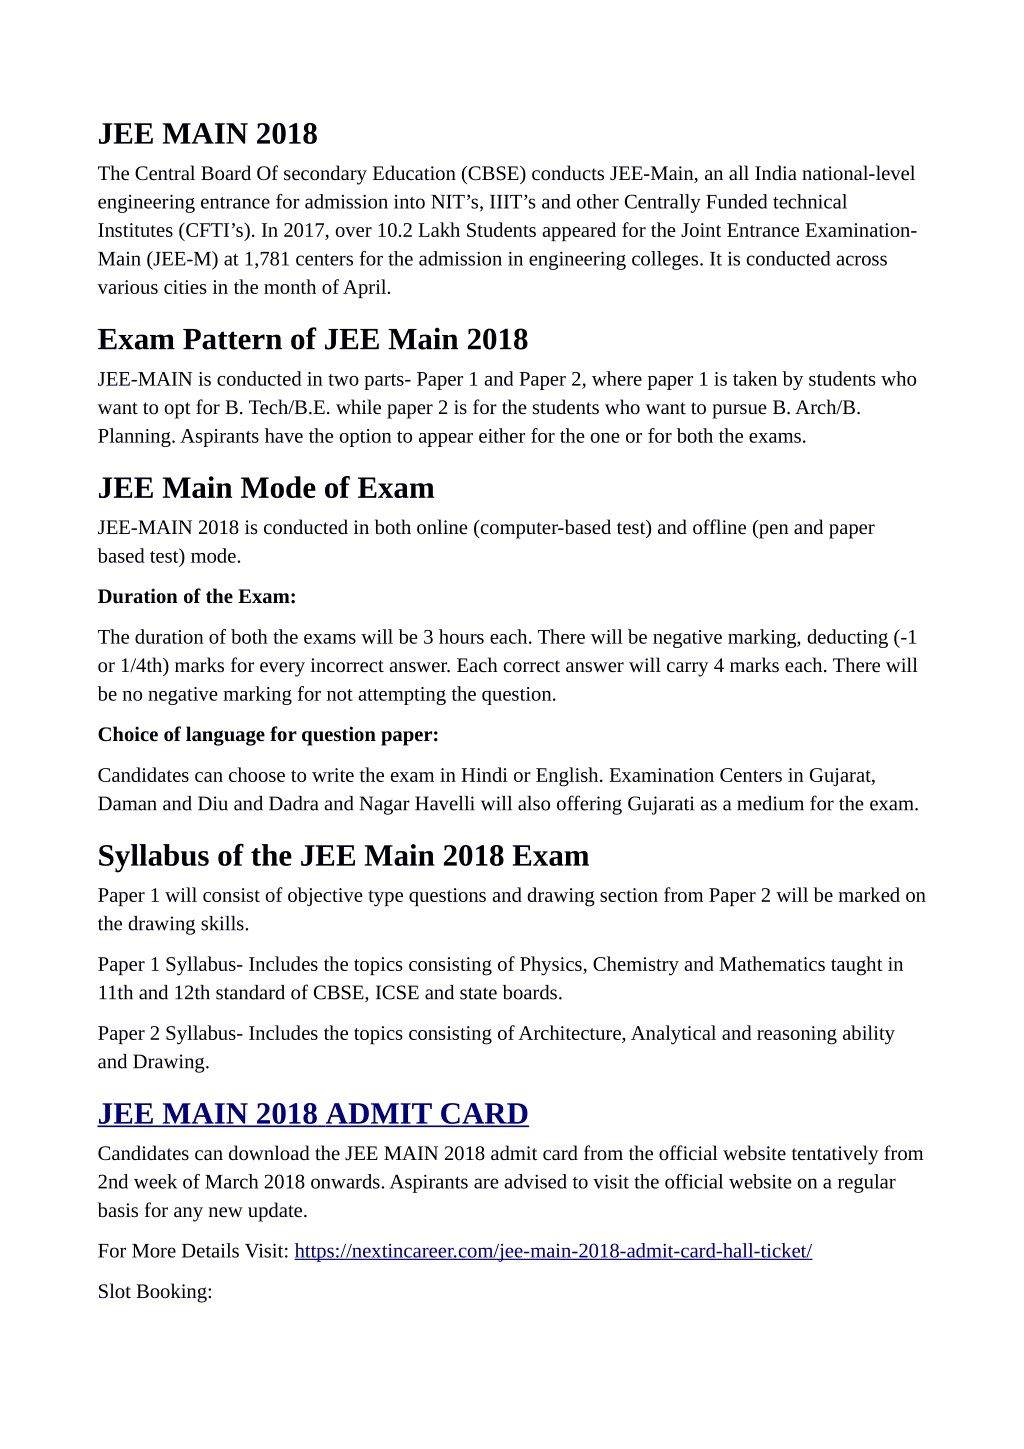 PPT - JEE Main 2018 Admit Card / Hall Ticket PowerPoint